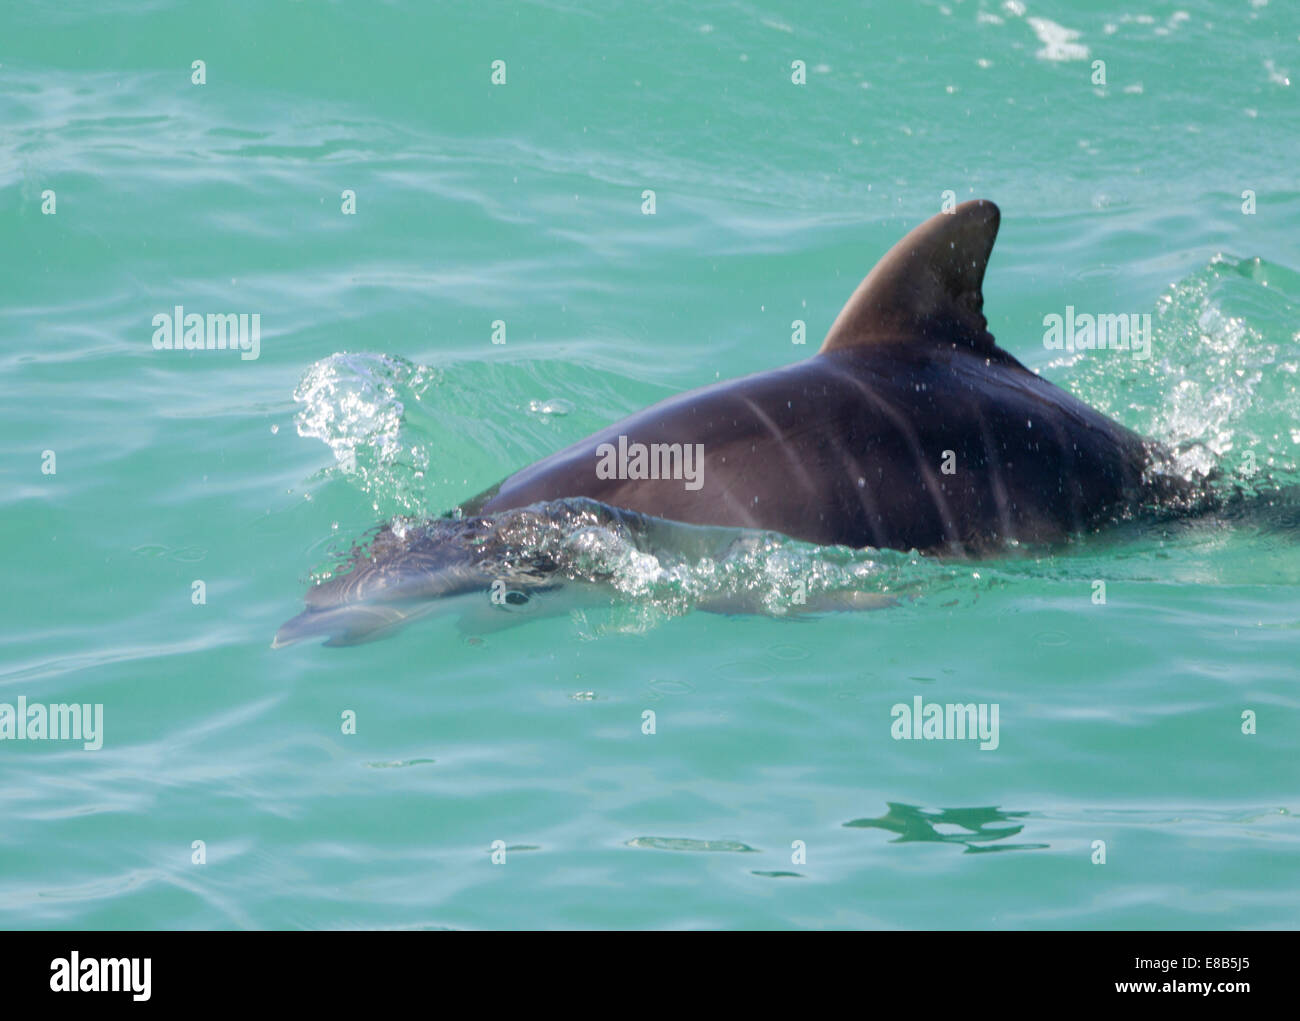 Bottlenose Dolphin Eye visible below the water - Stock Image